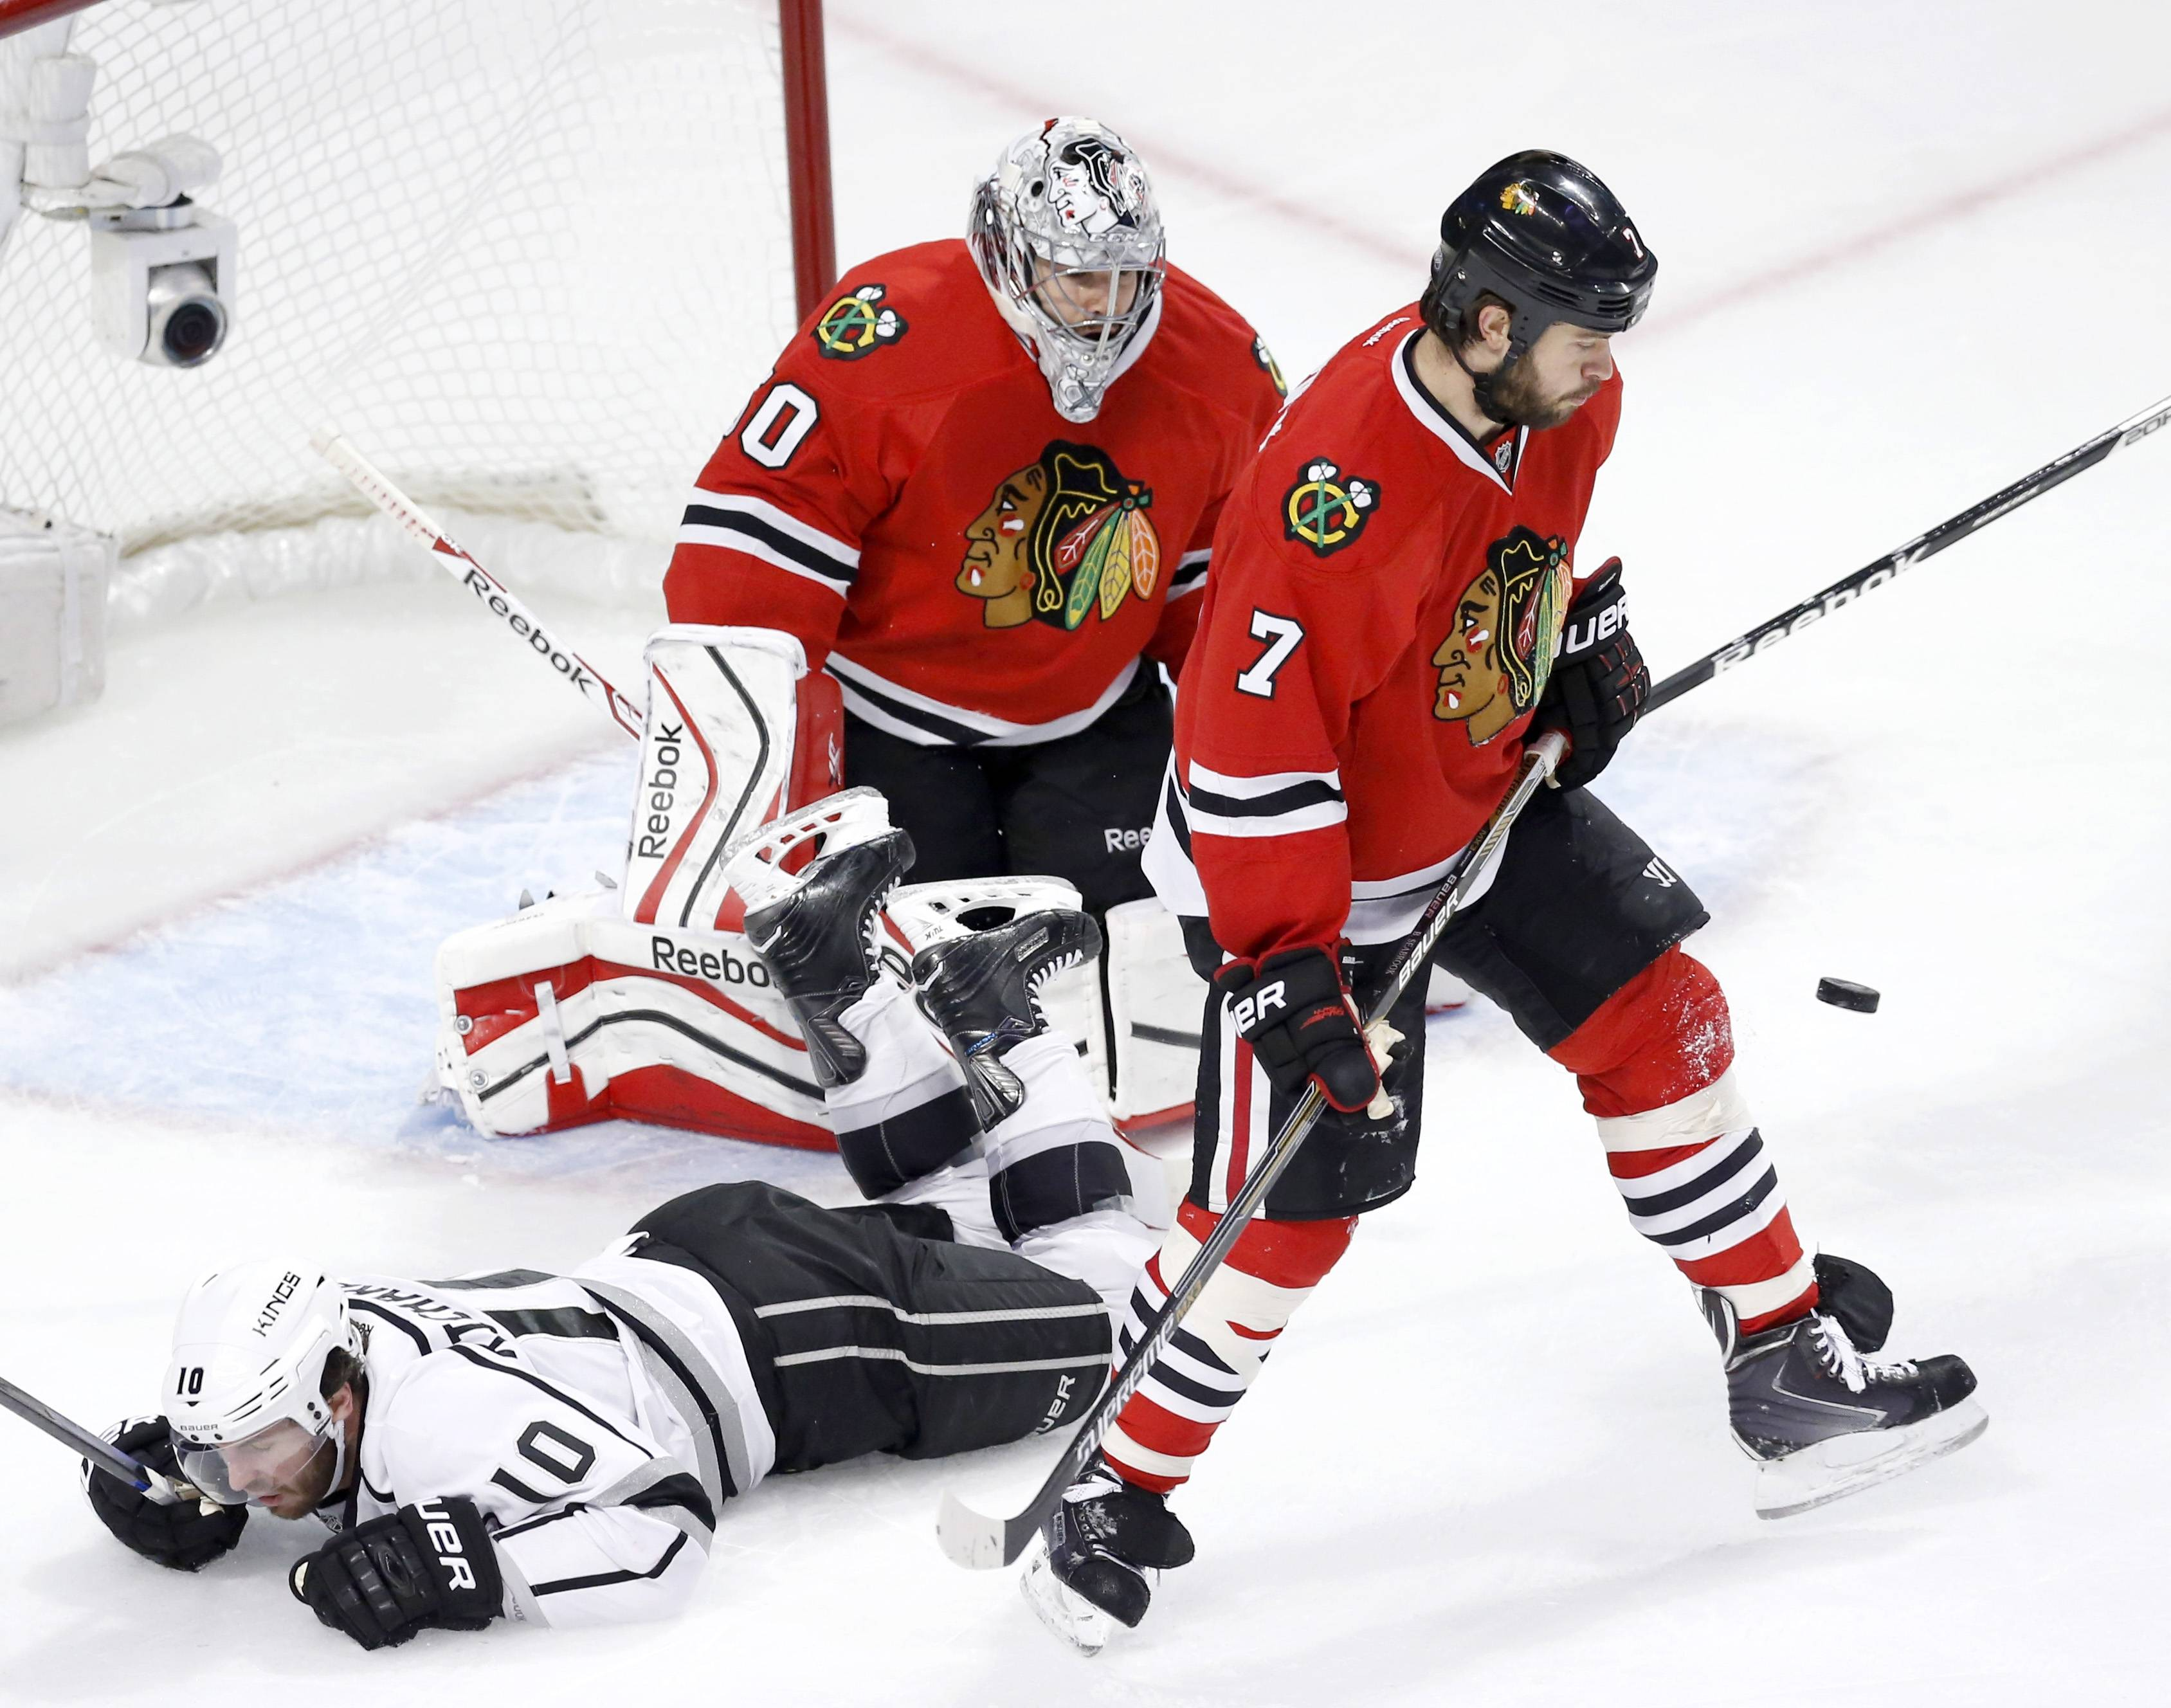 "In this photo taken Sunday, Chicago Blackhawks defenseman Brent Seabrook (7) deflects a shot on goal away from goalie Corey Crawford (50) as Los Angeles Kings center Mike Richards falls to the ice during the second period of Game 1 of the Western Conference finals in the NHL hockey Stanley Cup playoffs in Chicago. ""Between whistles and during the play, I think there's going to be a lot of physical play — a lot of stuff going on,"" Hawks captain Jonathan Toews said."